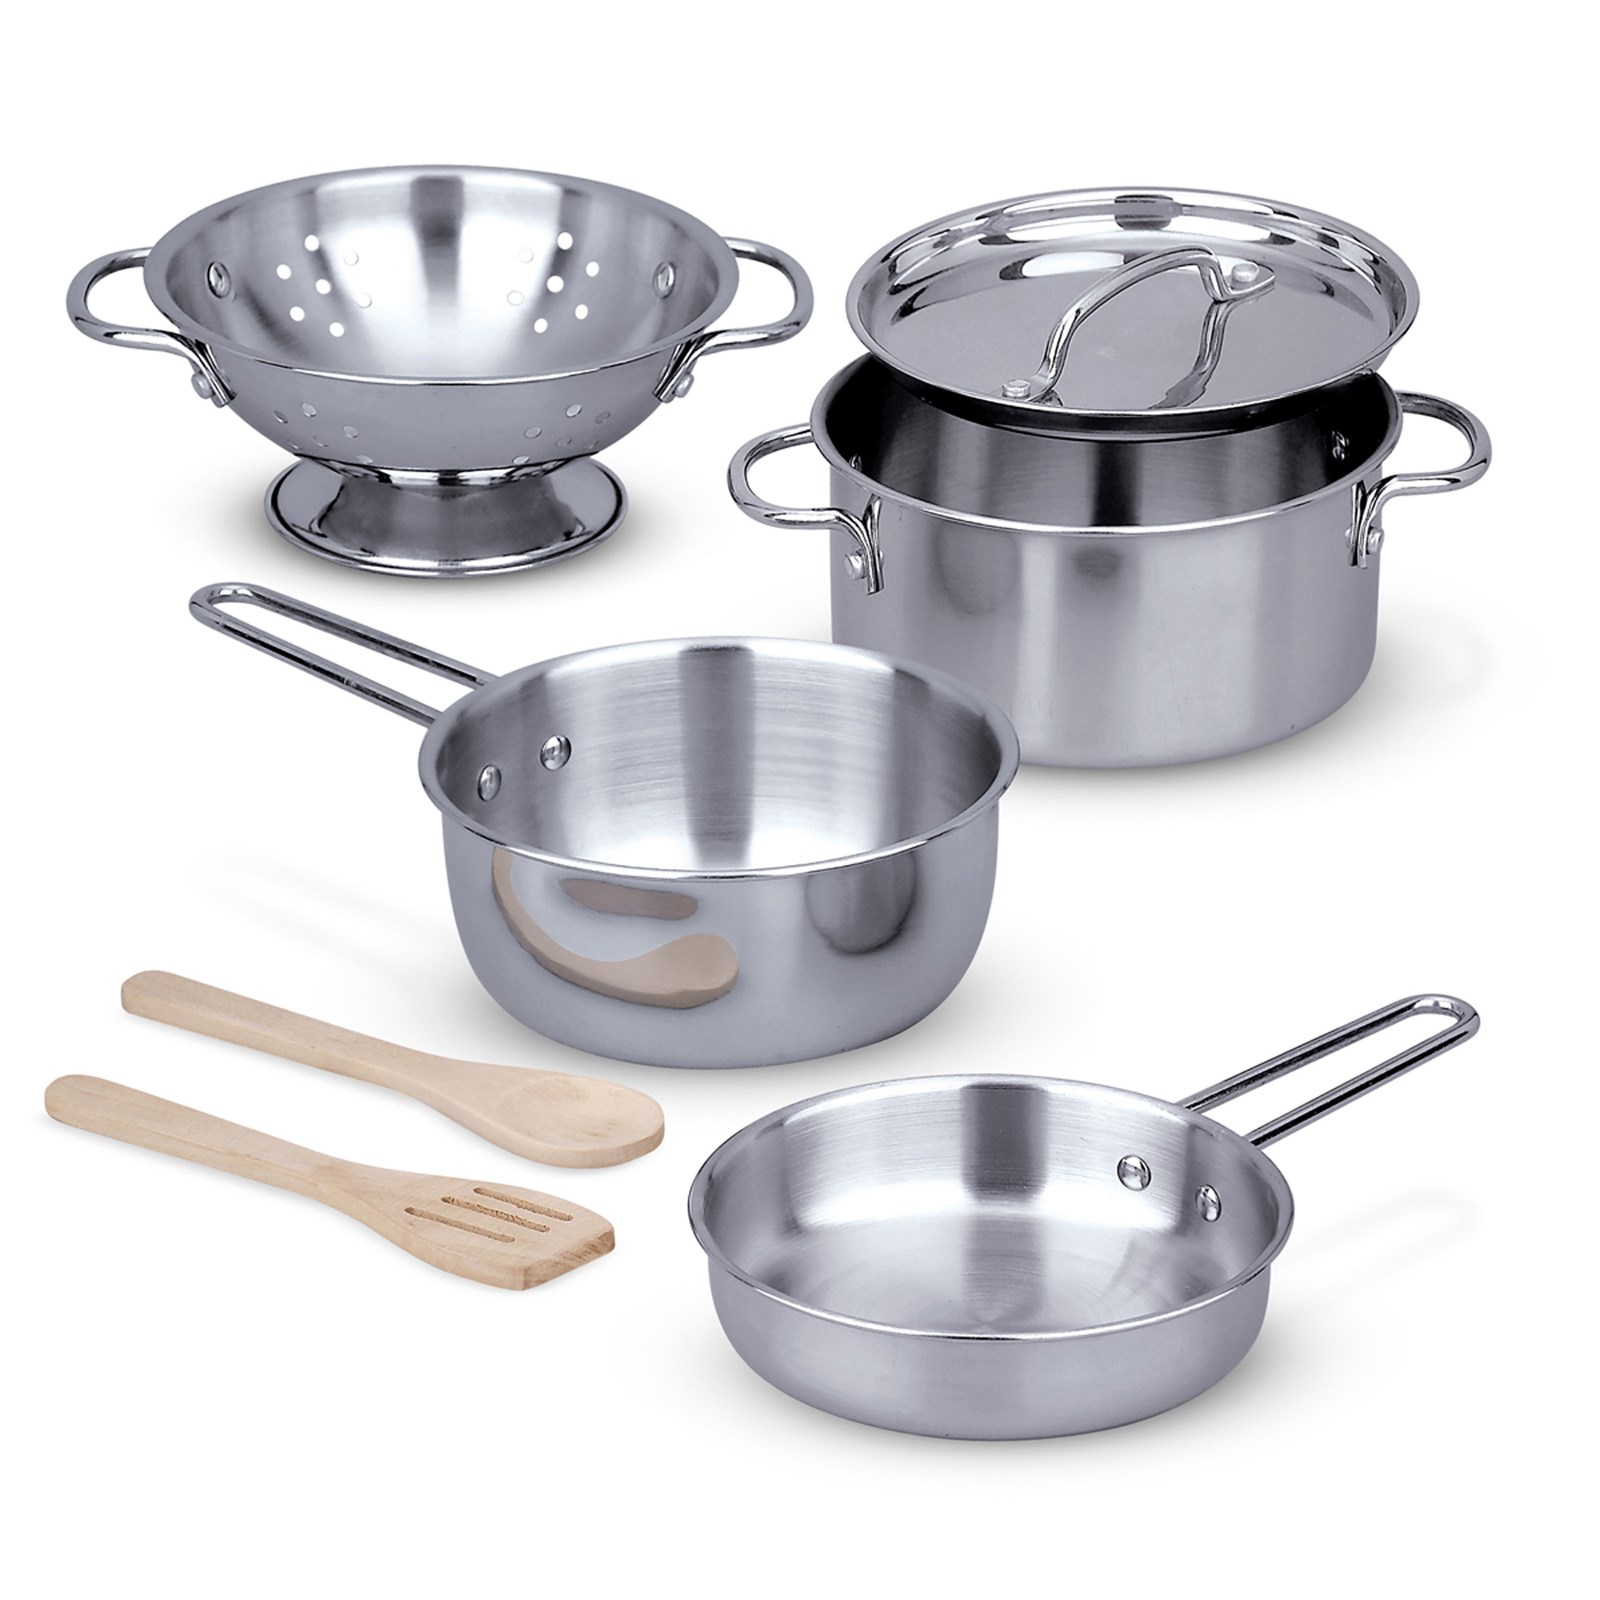 Stainless Steel Role Play Pots and Pan Set